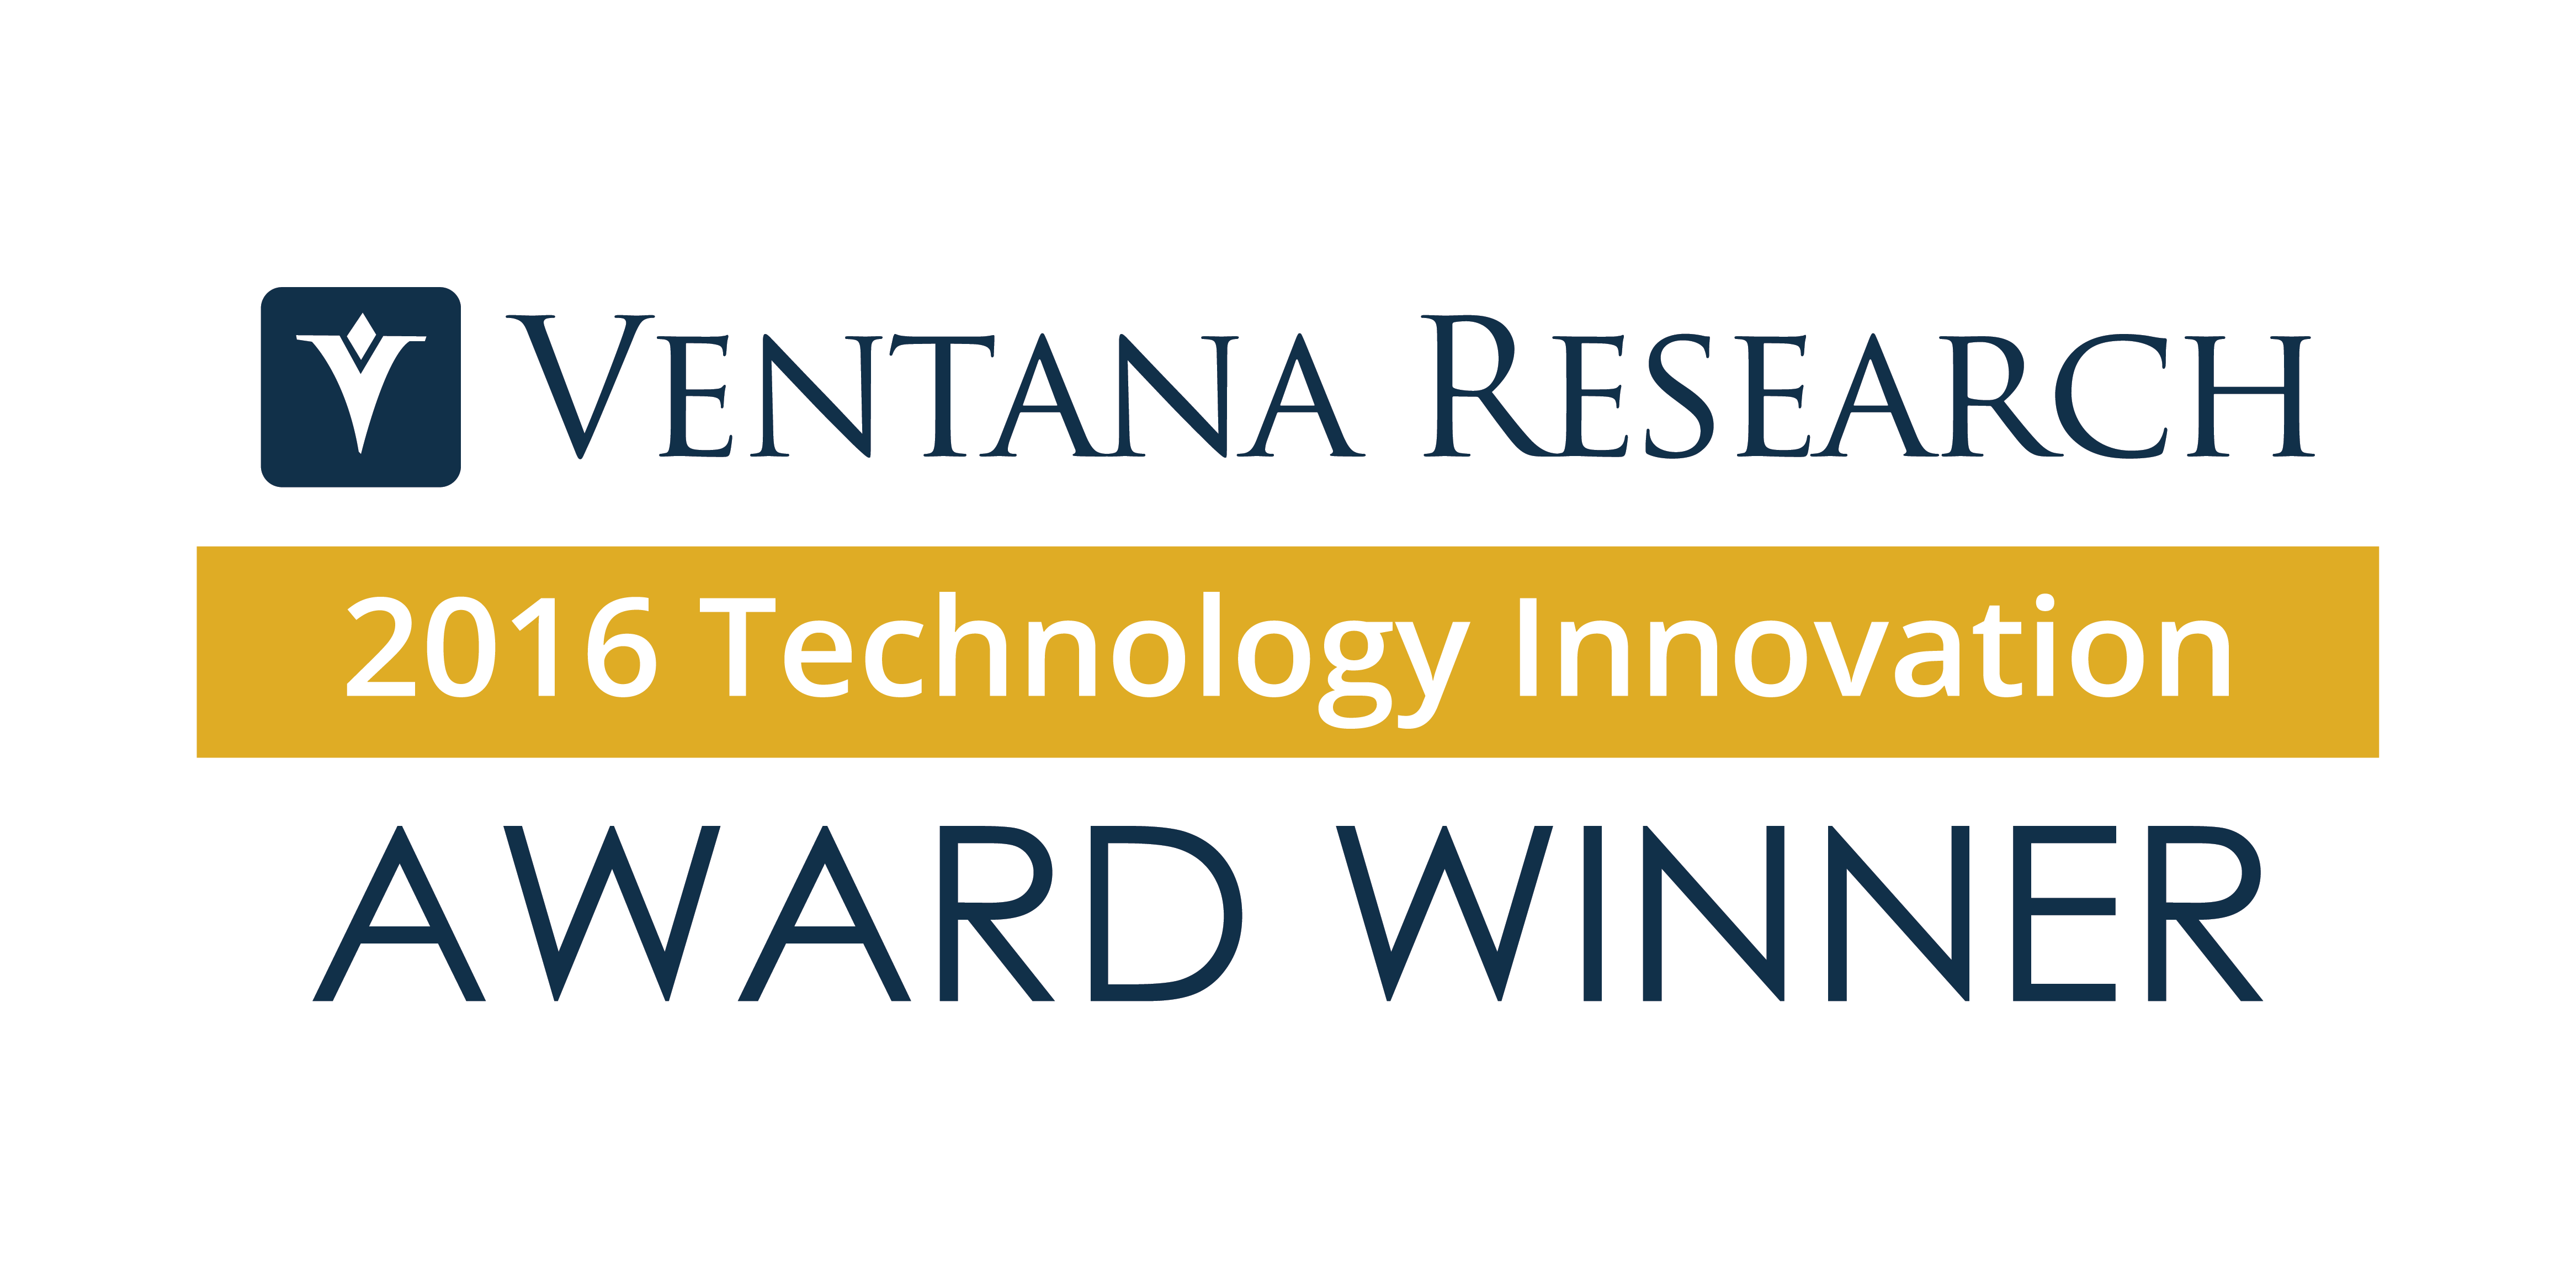 VentanaResearch_TechnologyInnovationAwards_Winner-2016.png